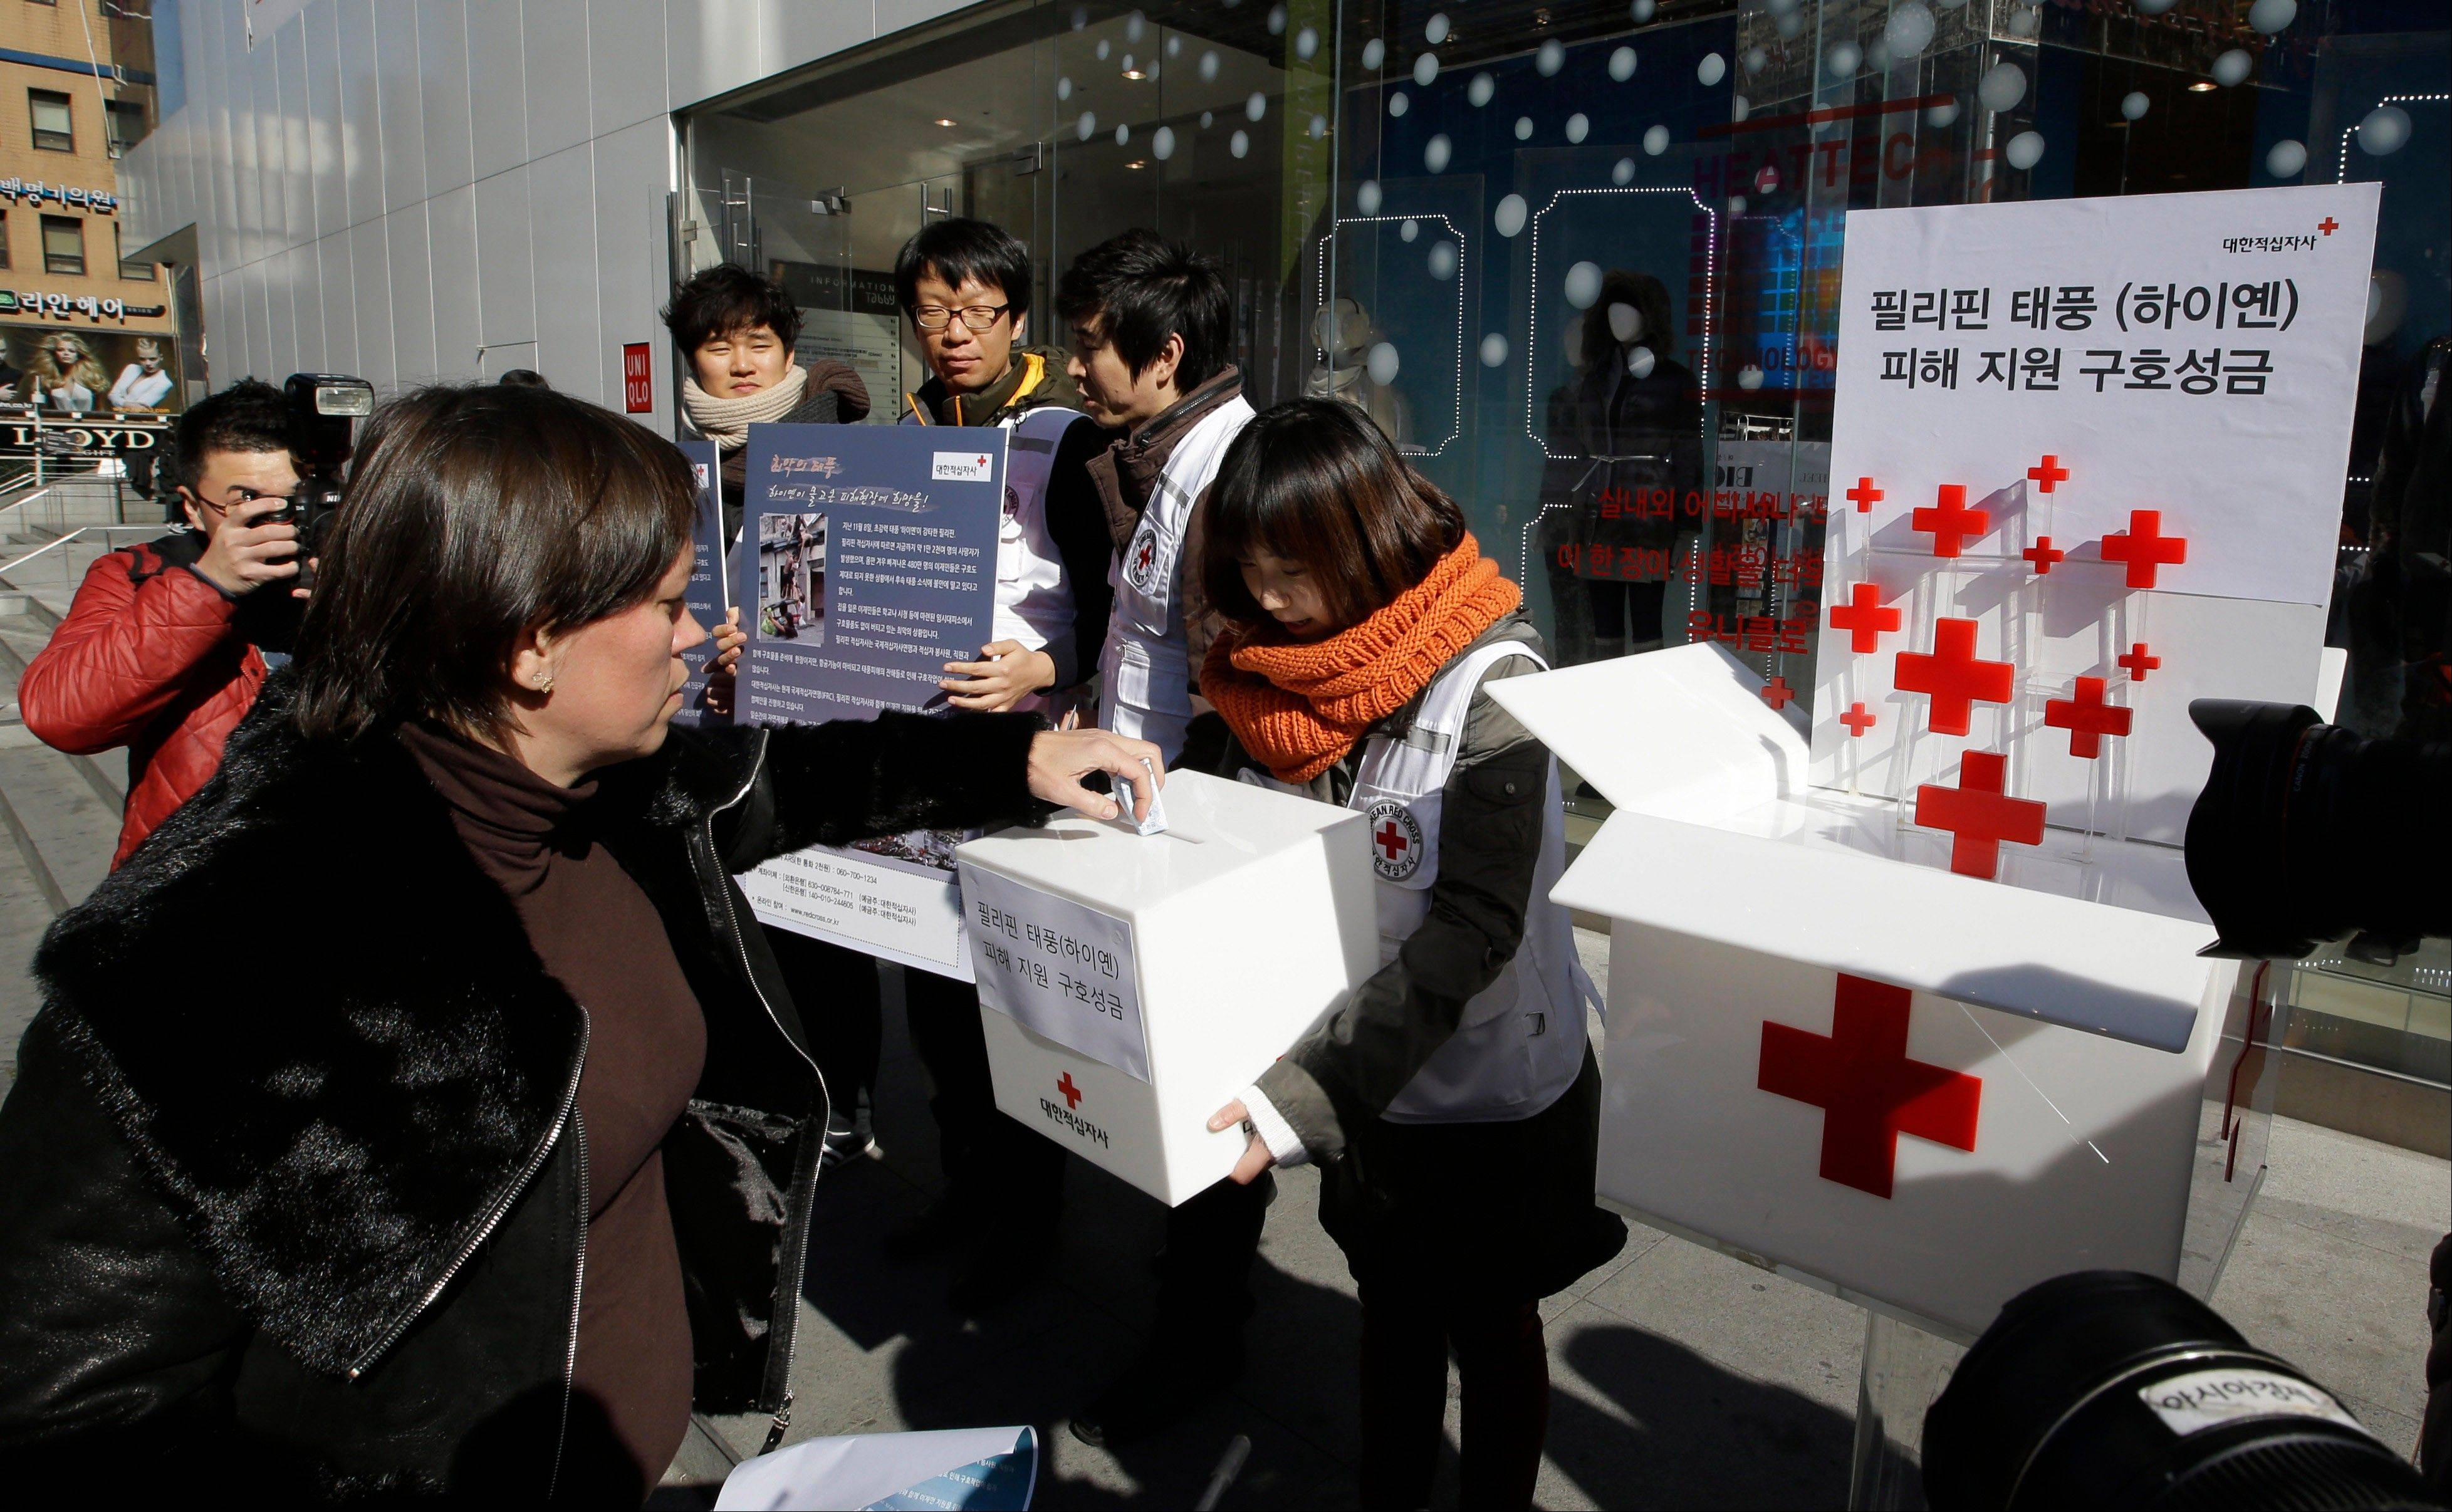 A tourist donates money for the victims of Typhoon Haiyan in the Philippines during a fundraising campaign on a street in Seoul, South Korea. Signs read, �Aid donation for the victims of Typhoon Haiyan.�